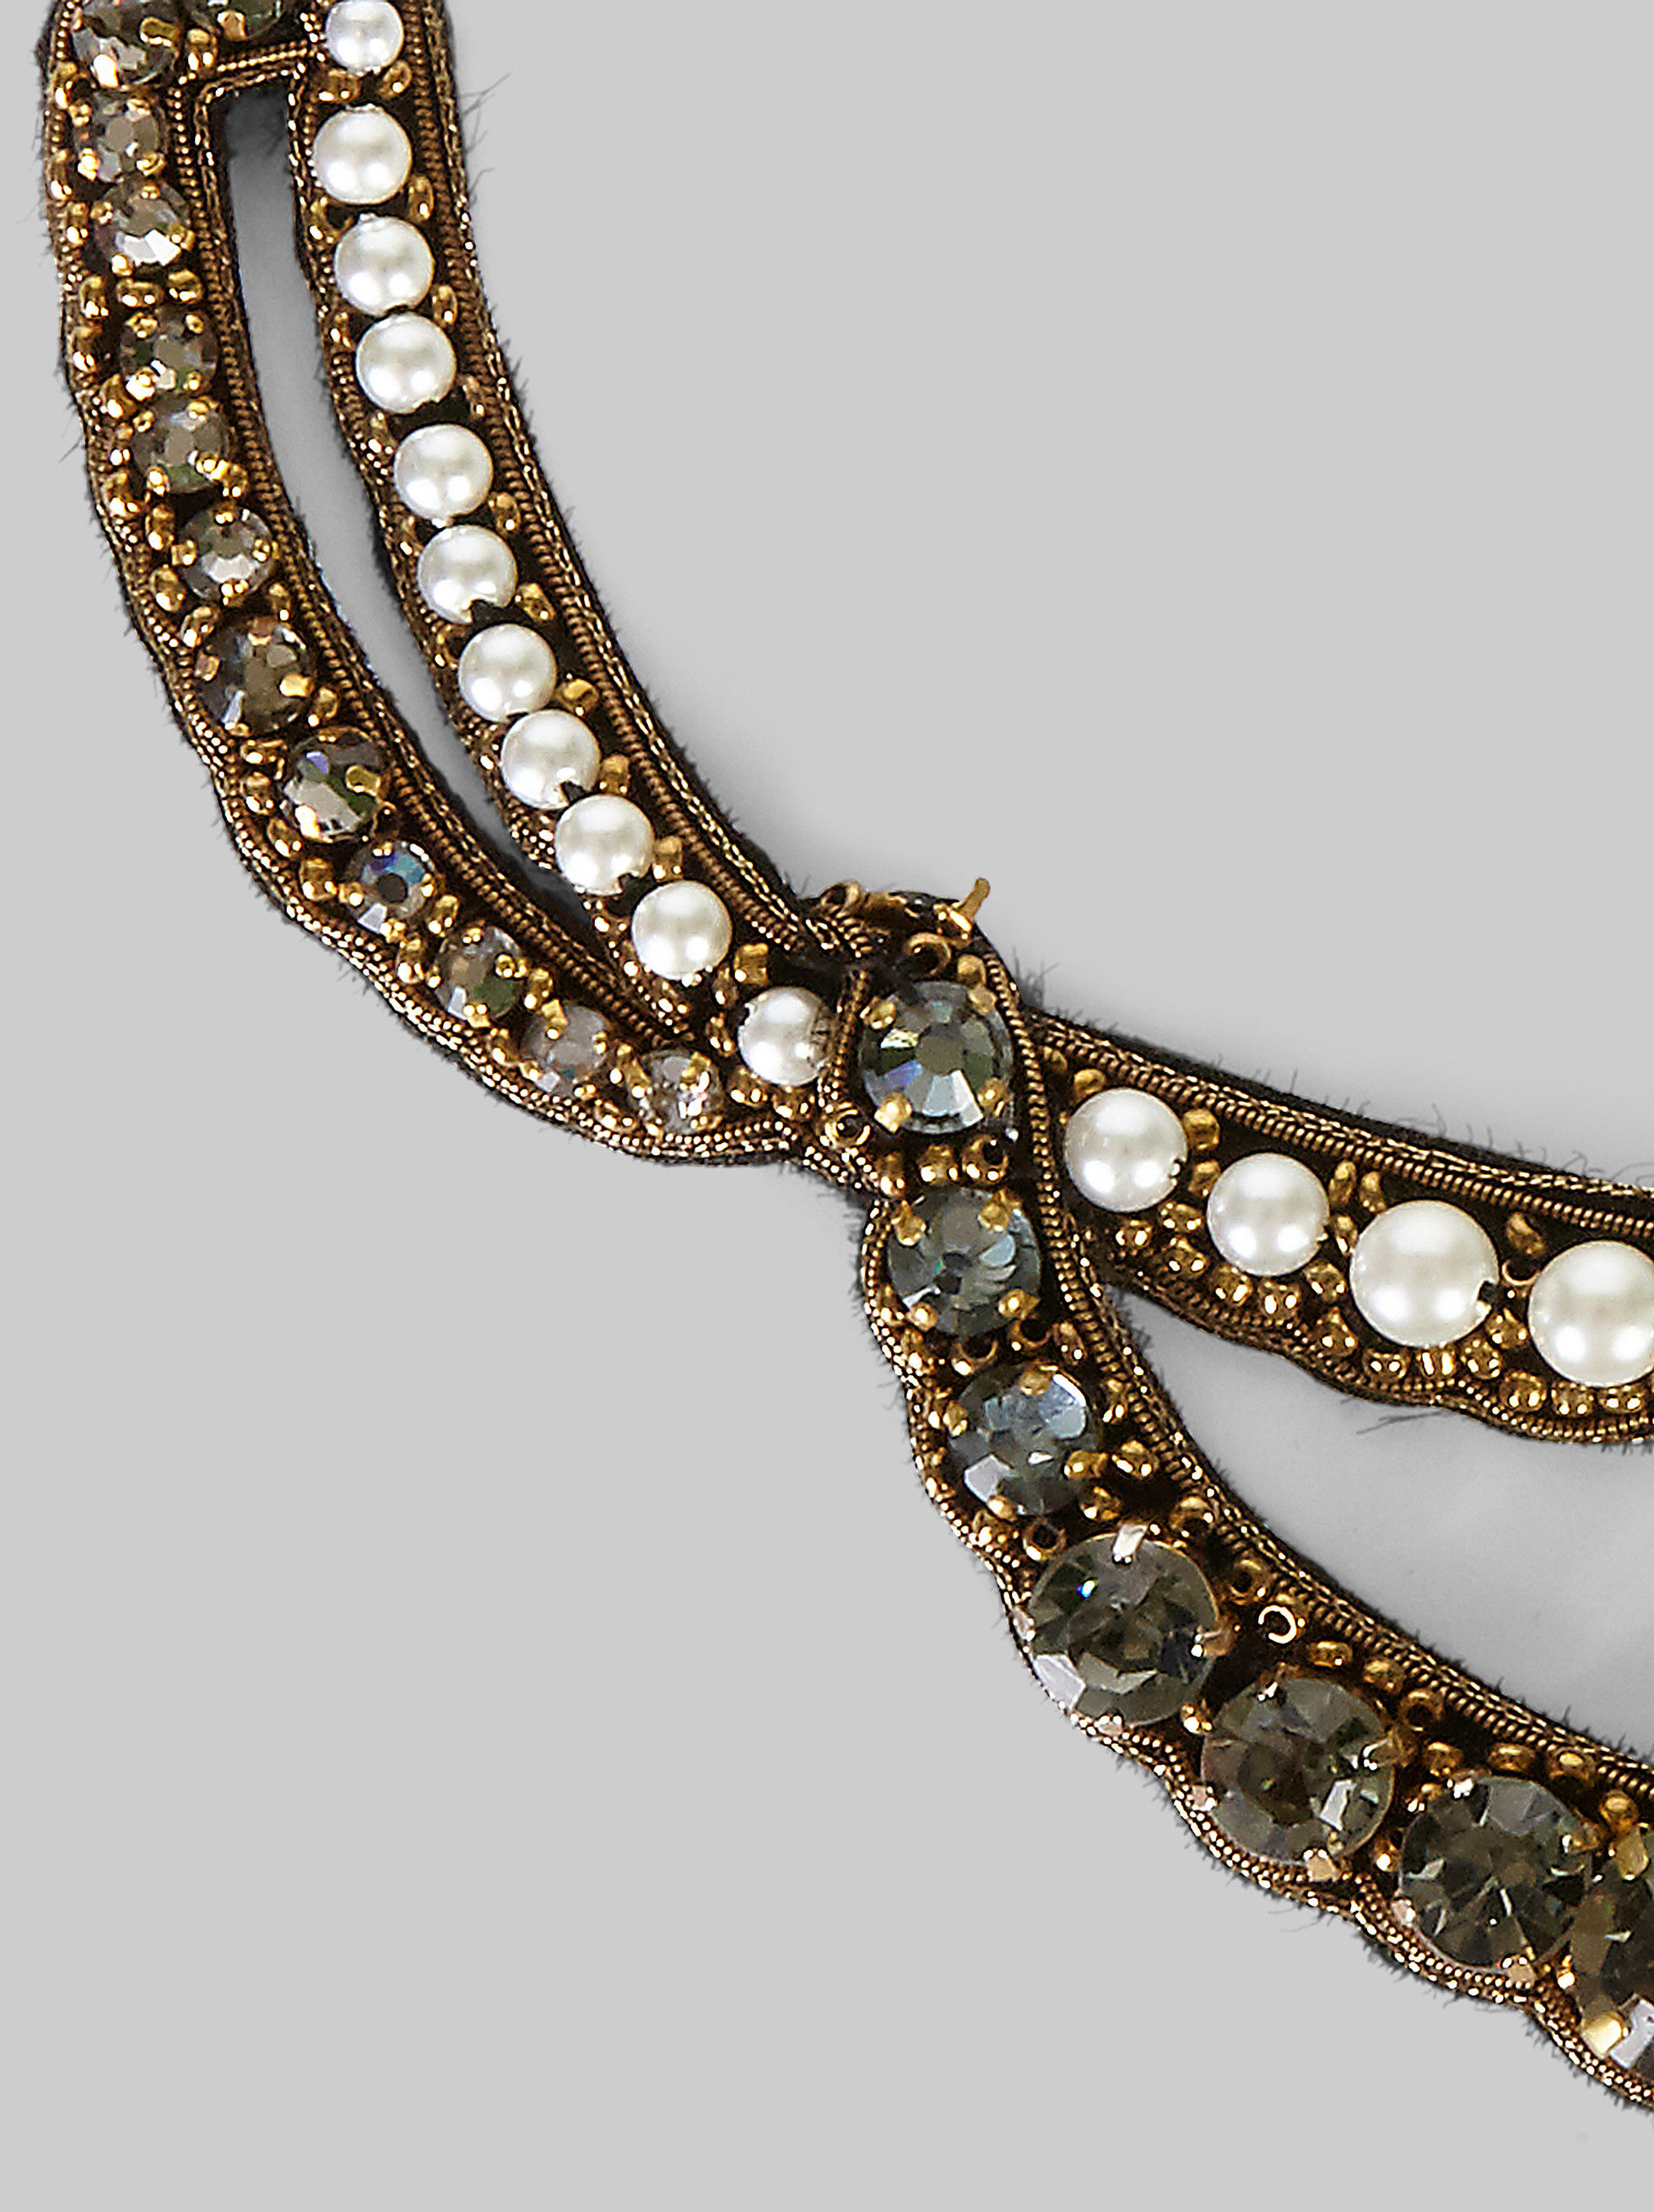 NECKLACE WITH PEARLS AND RHINESTONES